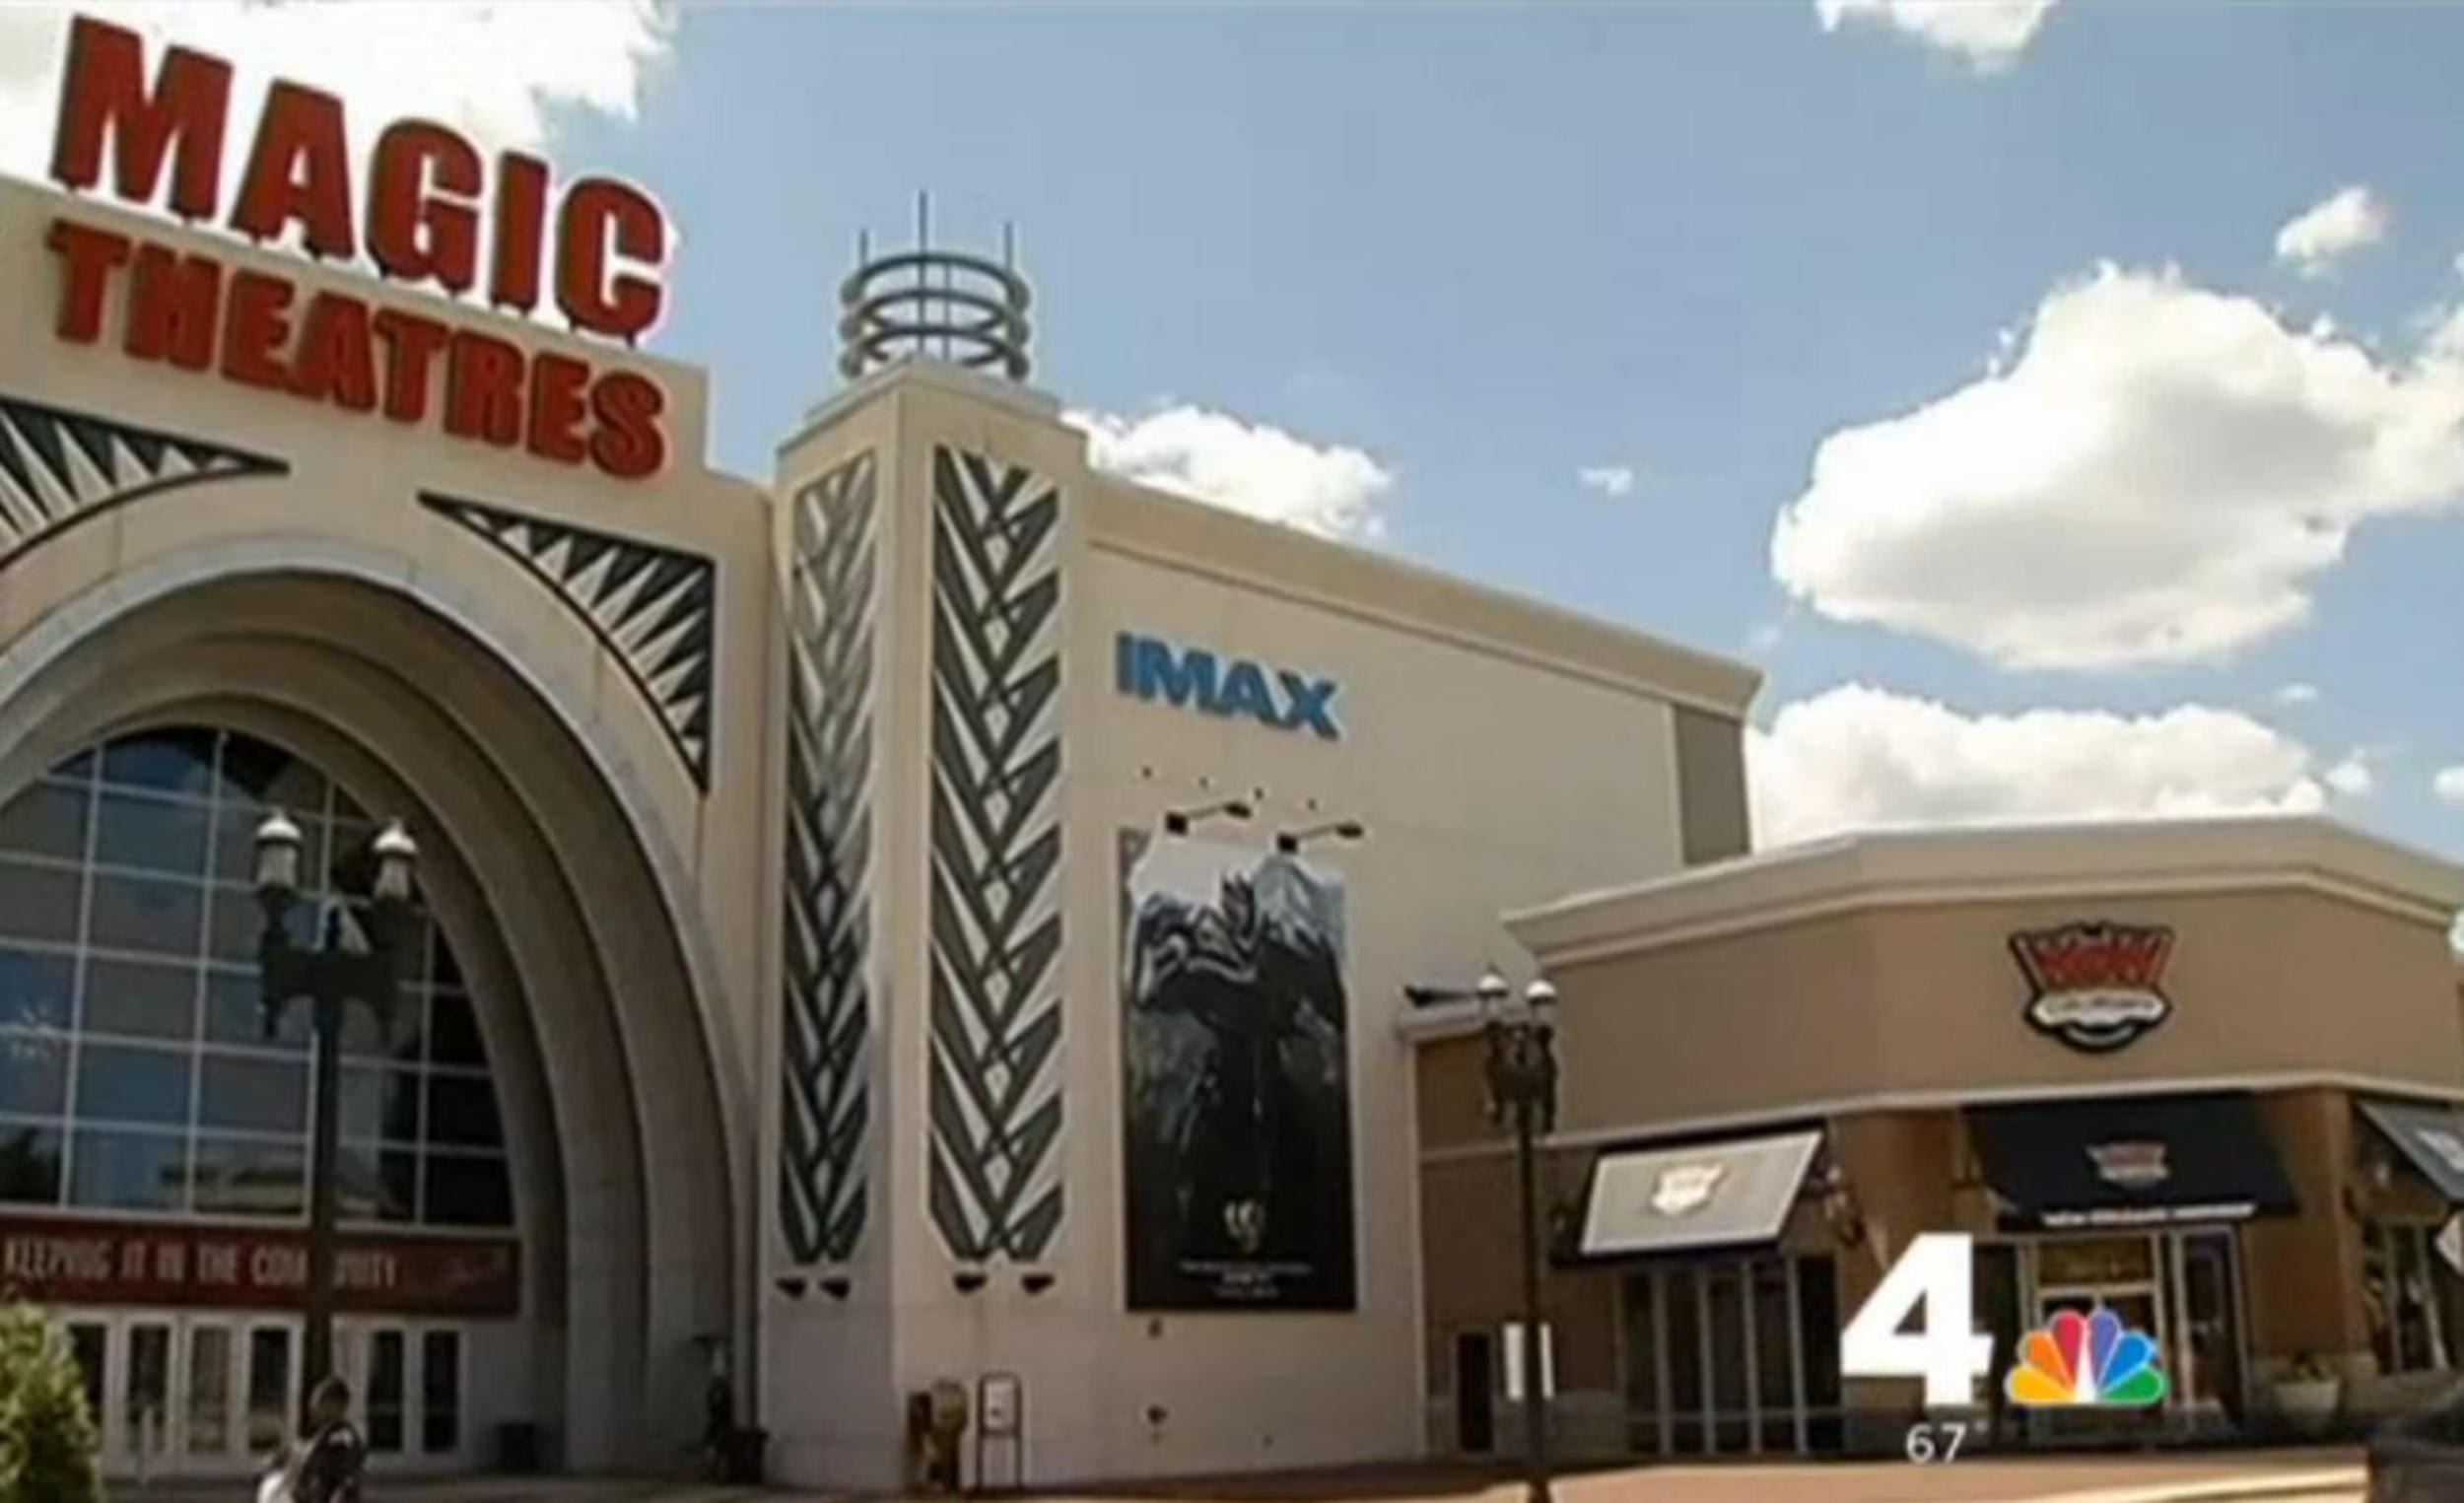 Movie times, buy movie tickets online, watch trailers and get directions to AMC Magic Johnson Capital Center 12 in Largo, MD. Find everything you need for your local movie theater near you.